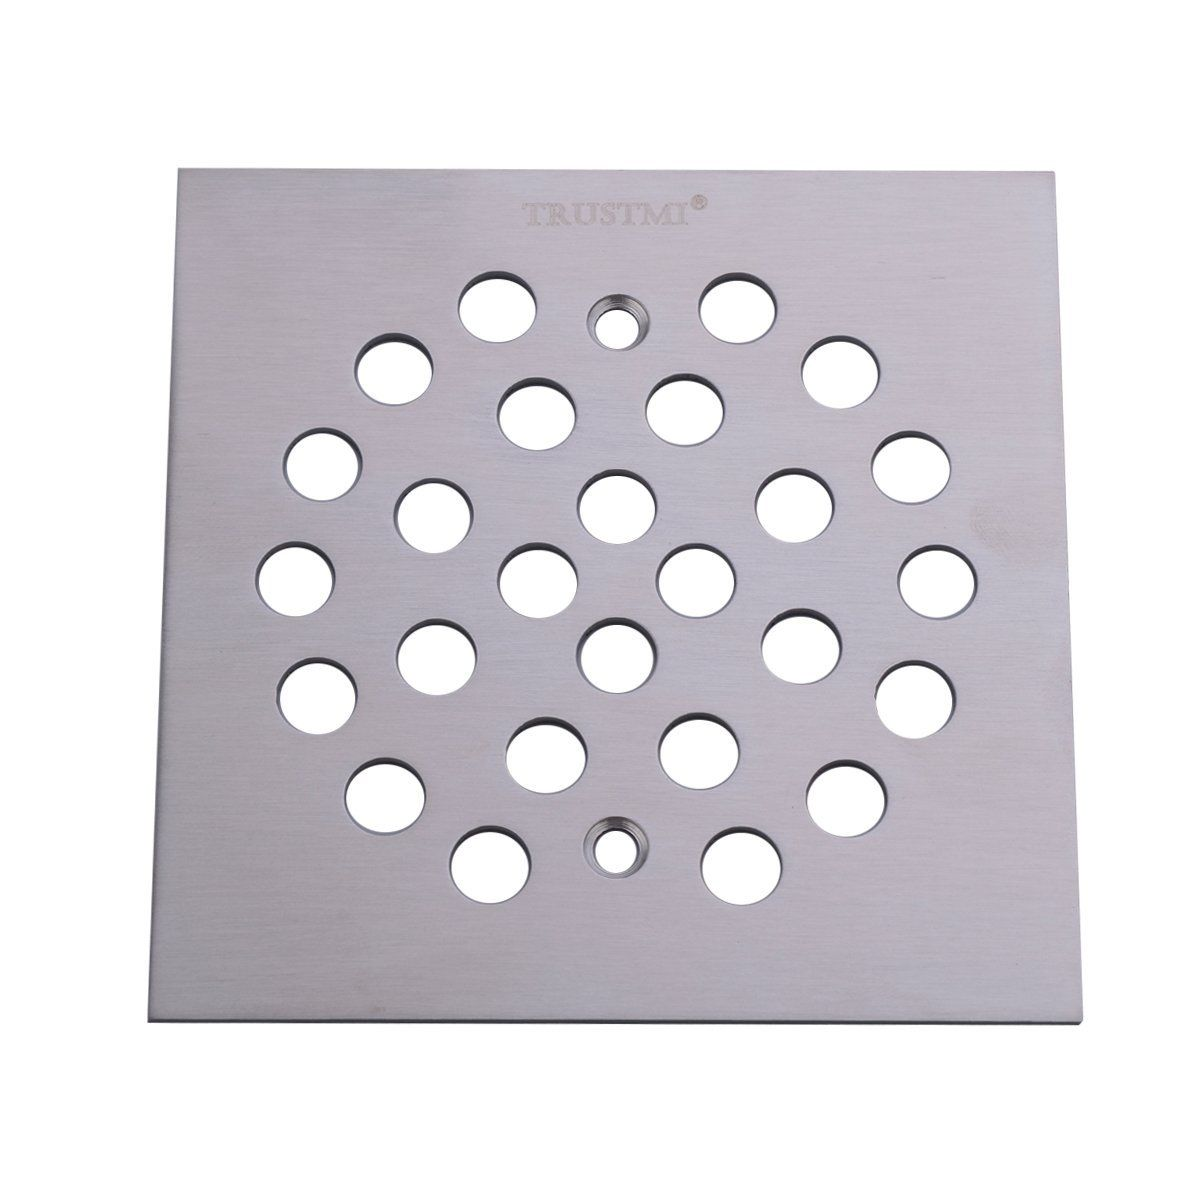 4 1 4 Inch Square Shower Drain Cover Brushed Stainless Finished